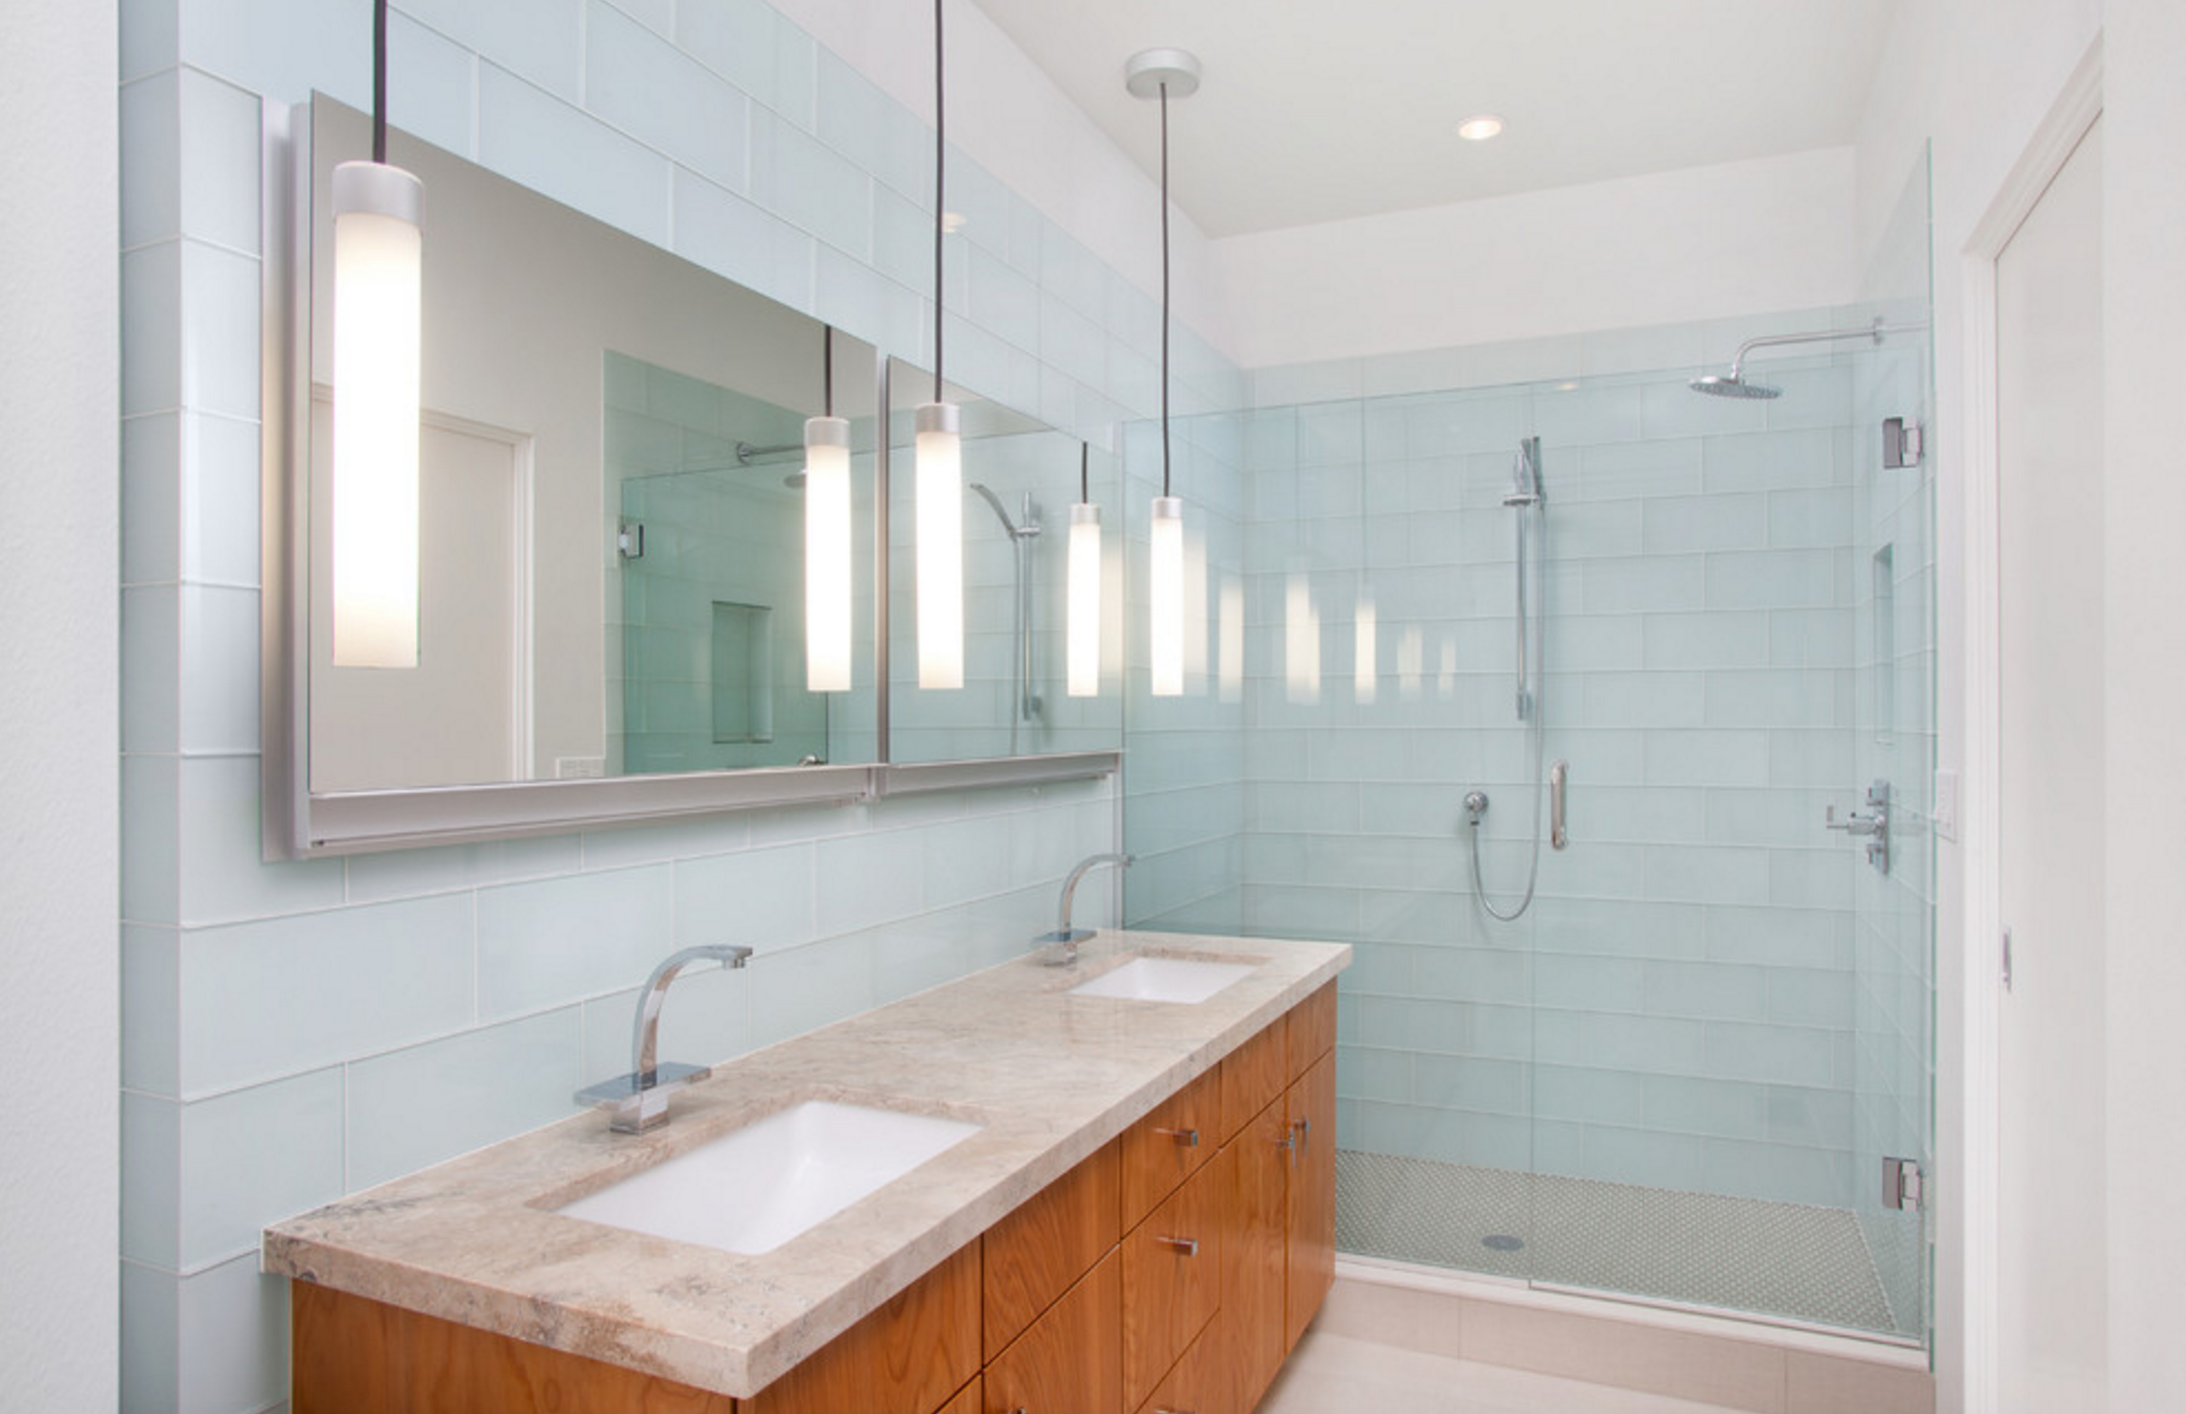 VISTA BATHROOM REMODEL | PORTLAND, OR